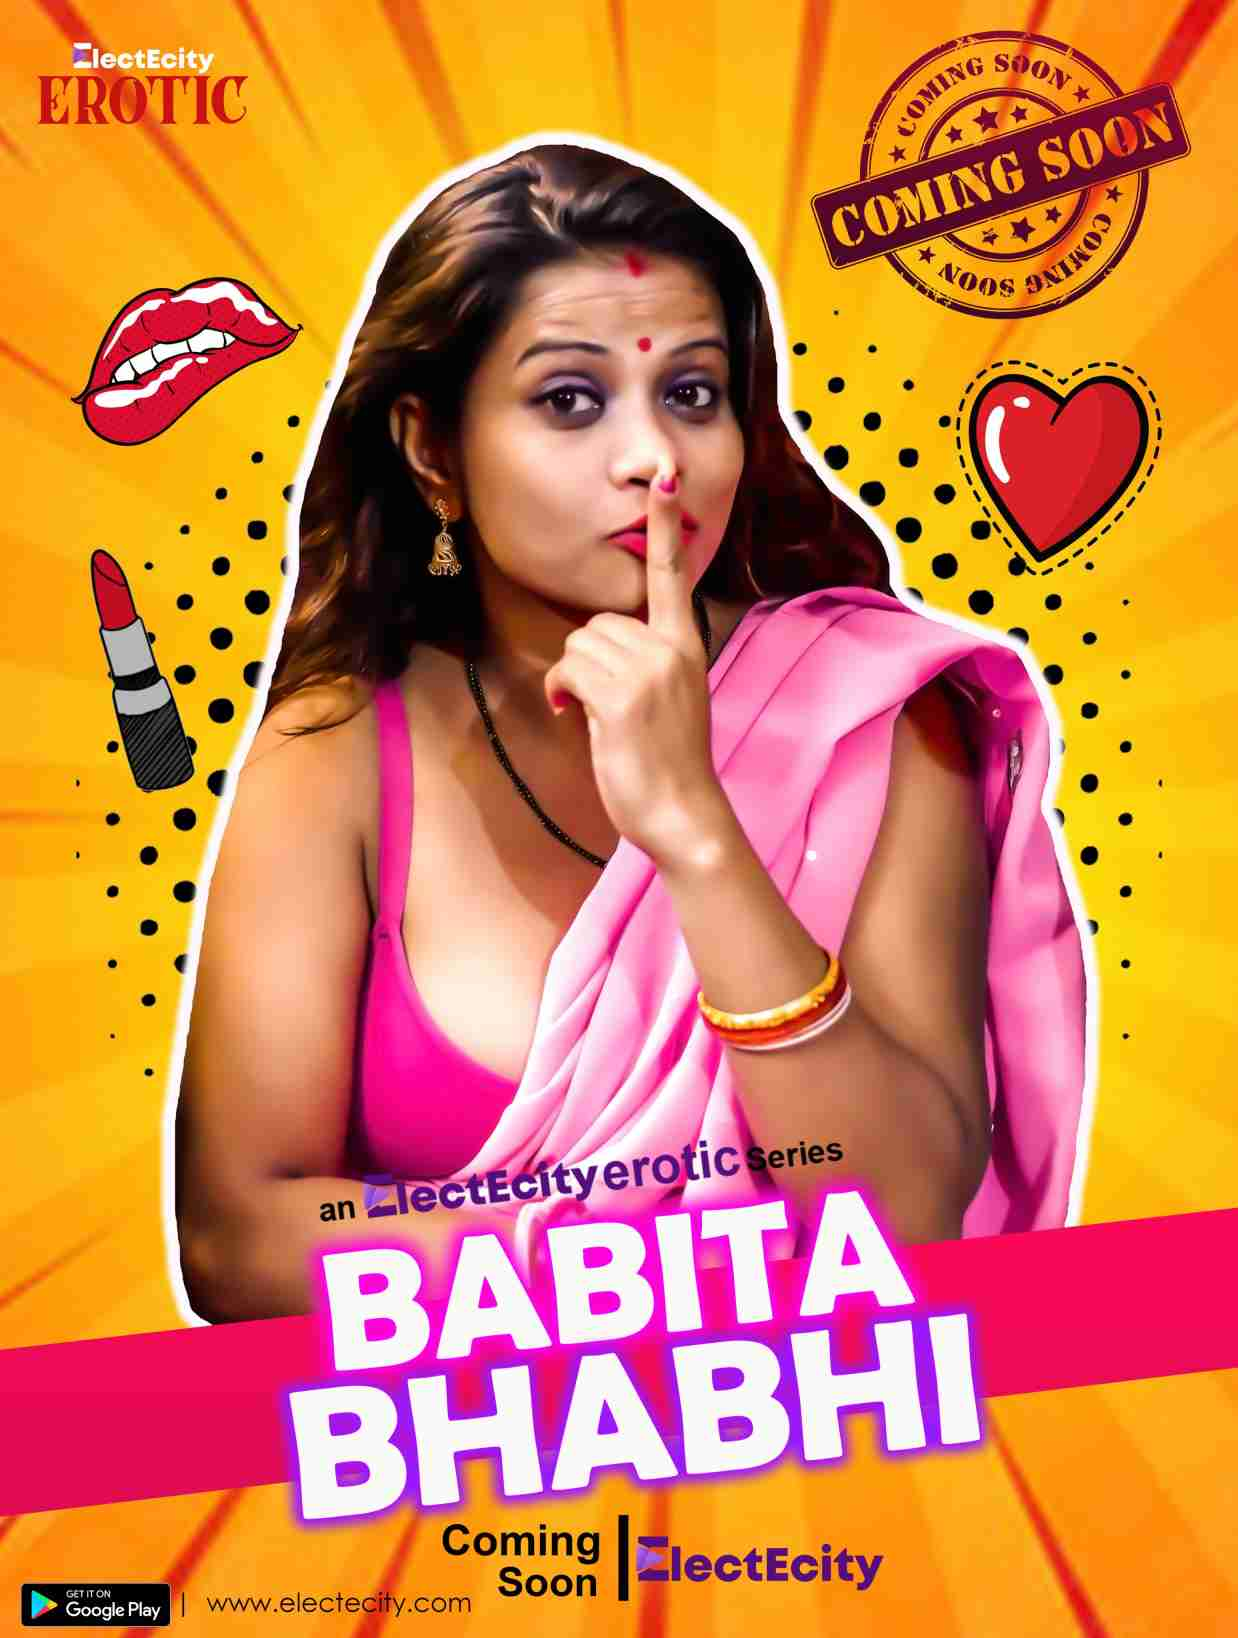 18+ Babita Bhabhi 2020 S01E03 Hindi ElectEcity Original Web Series 720p HDRip 150MB x264 AAC